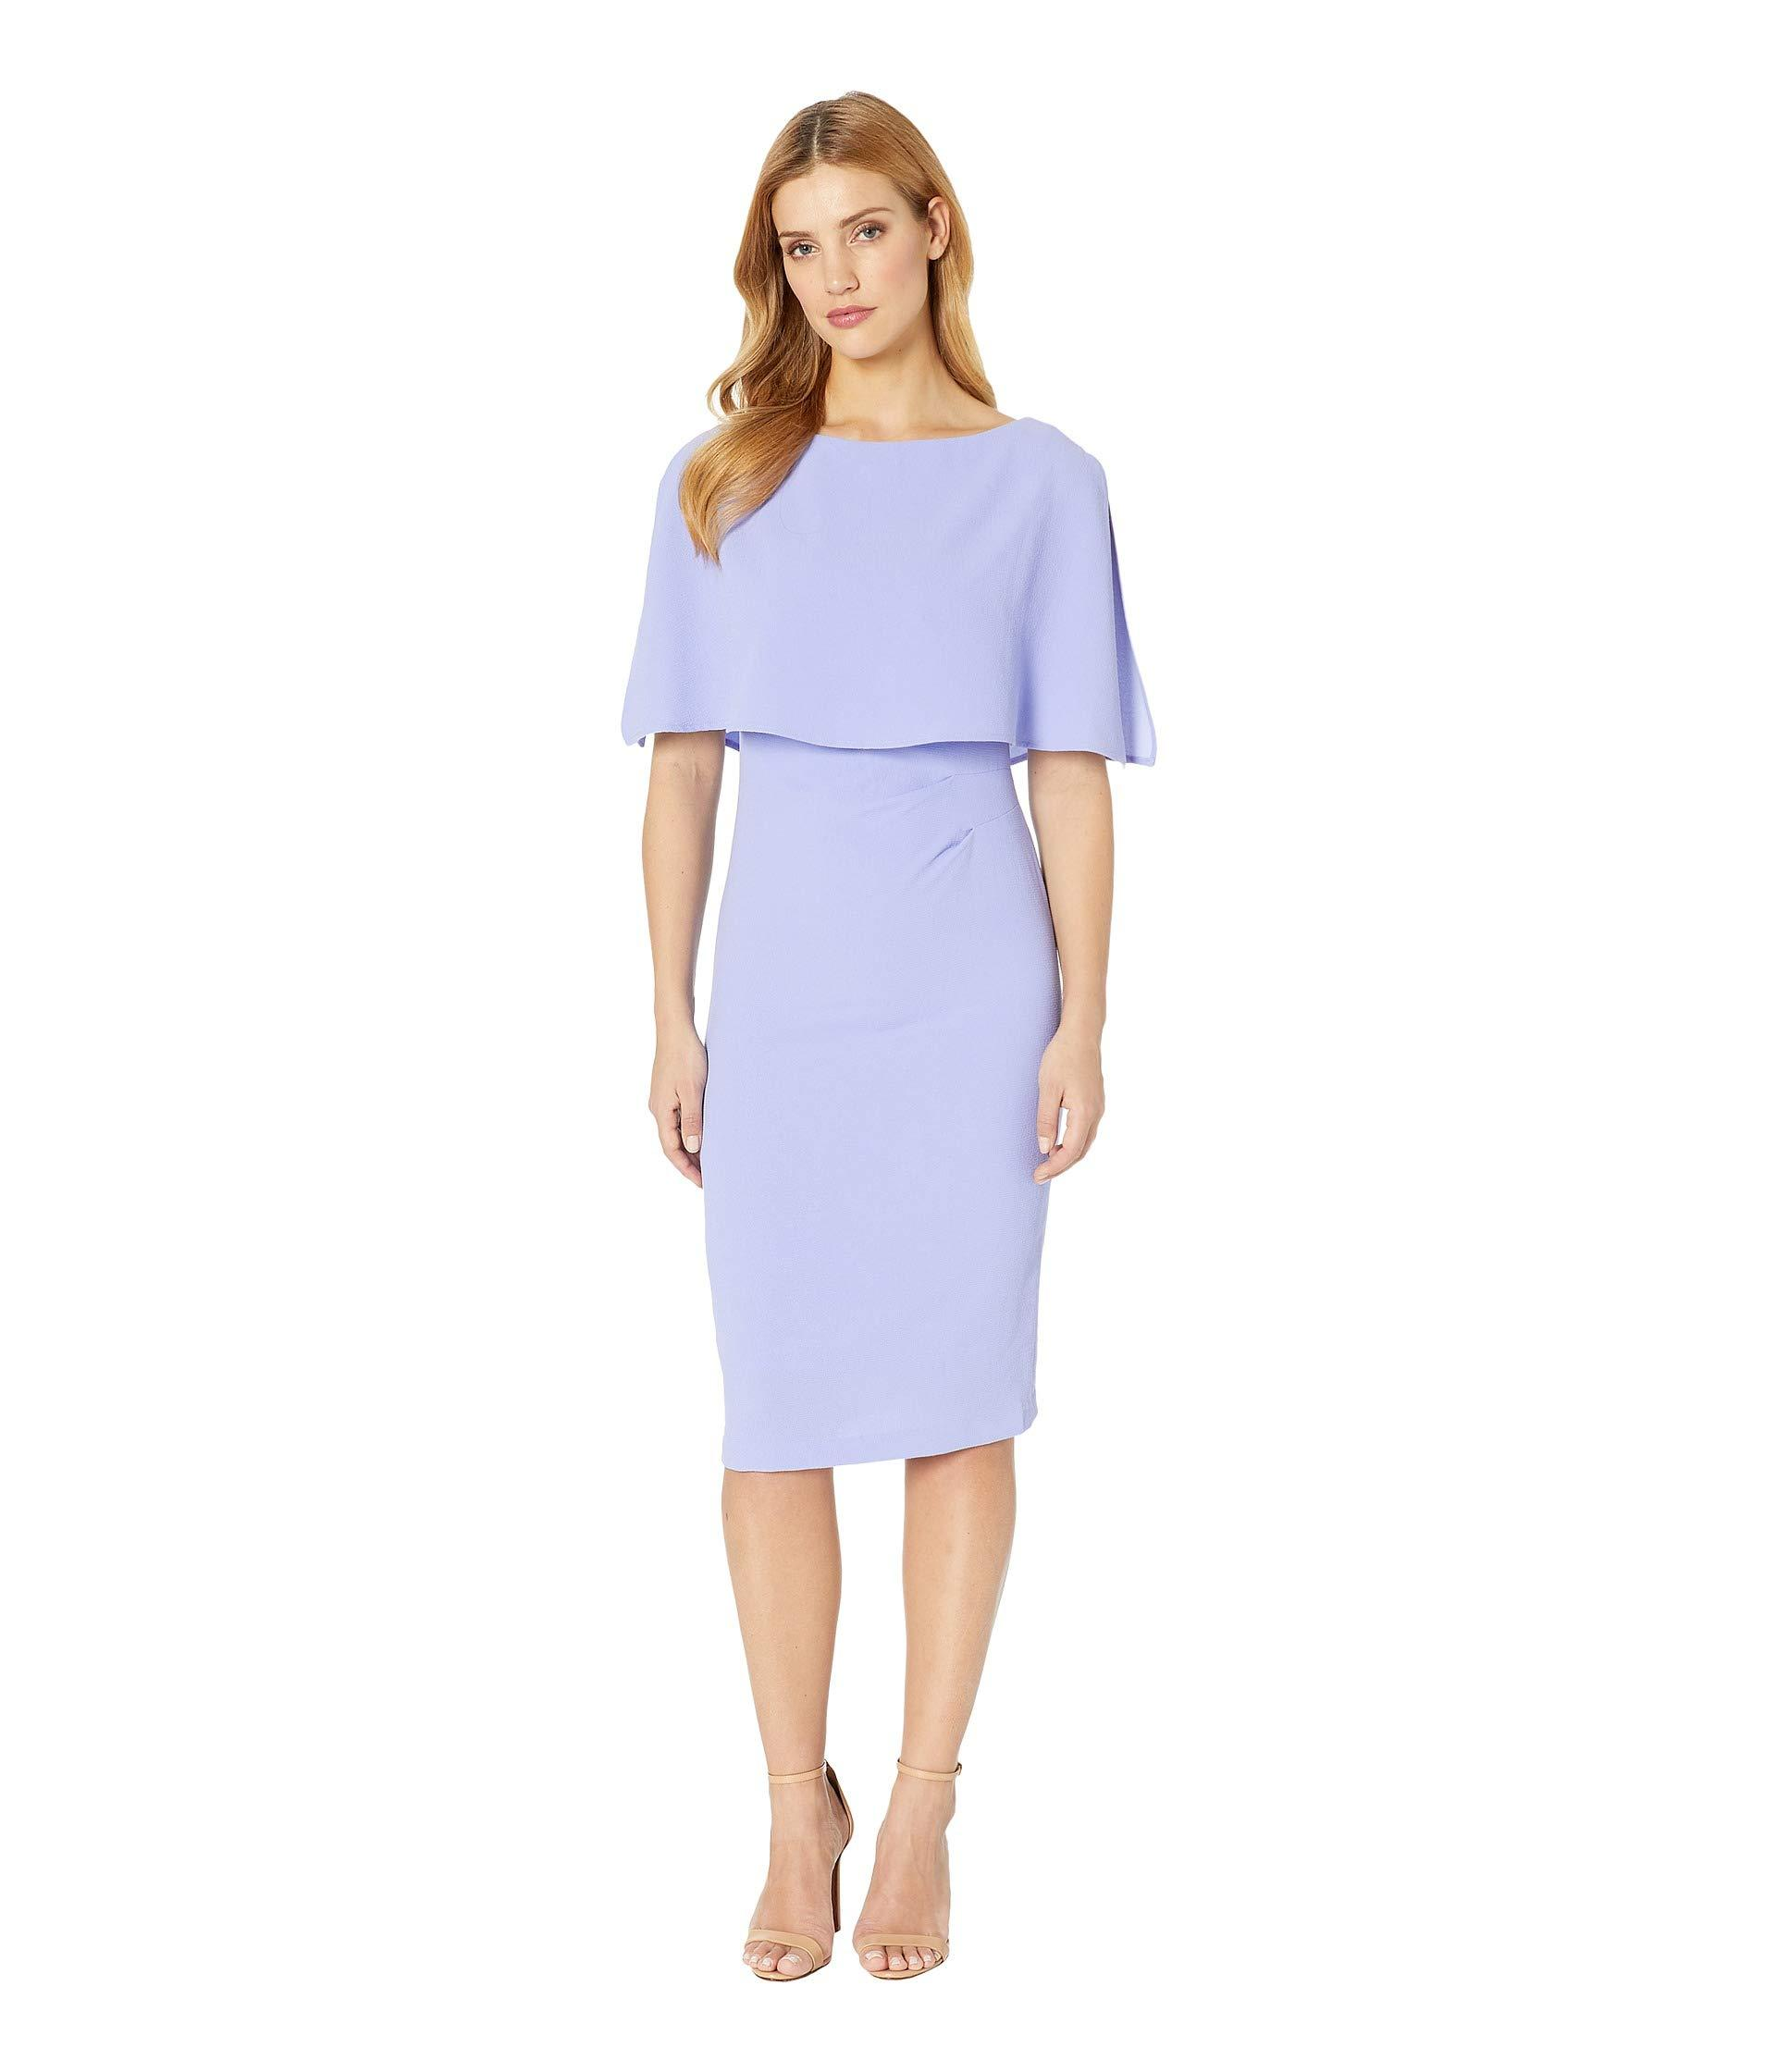 6f53ae510e8 Lyst - Adrianna Papell Boat Neck Cape Sheath Dress (smoky Hyacinth ...